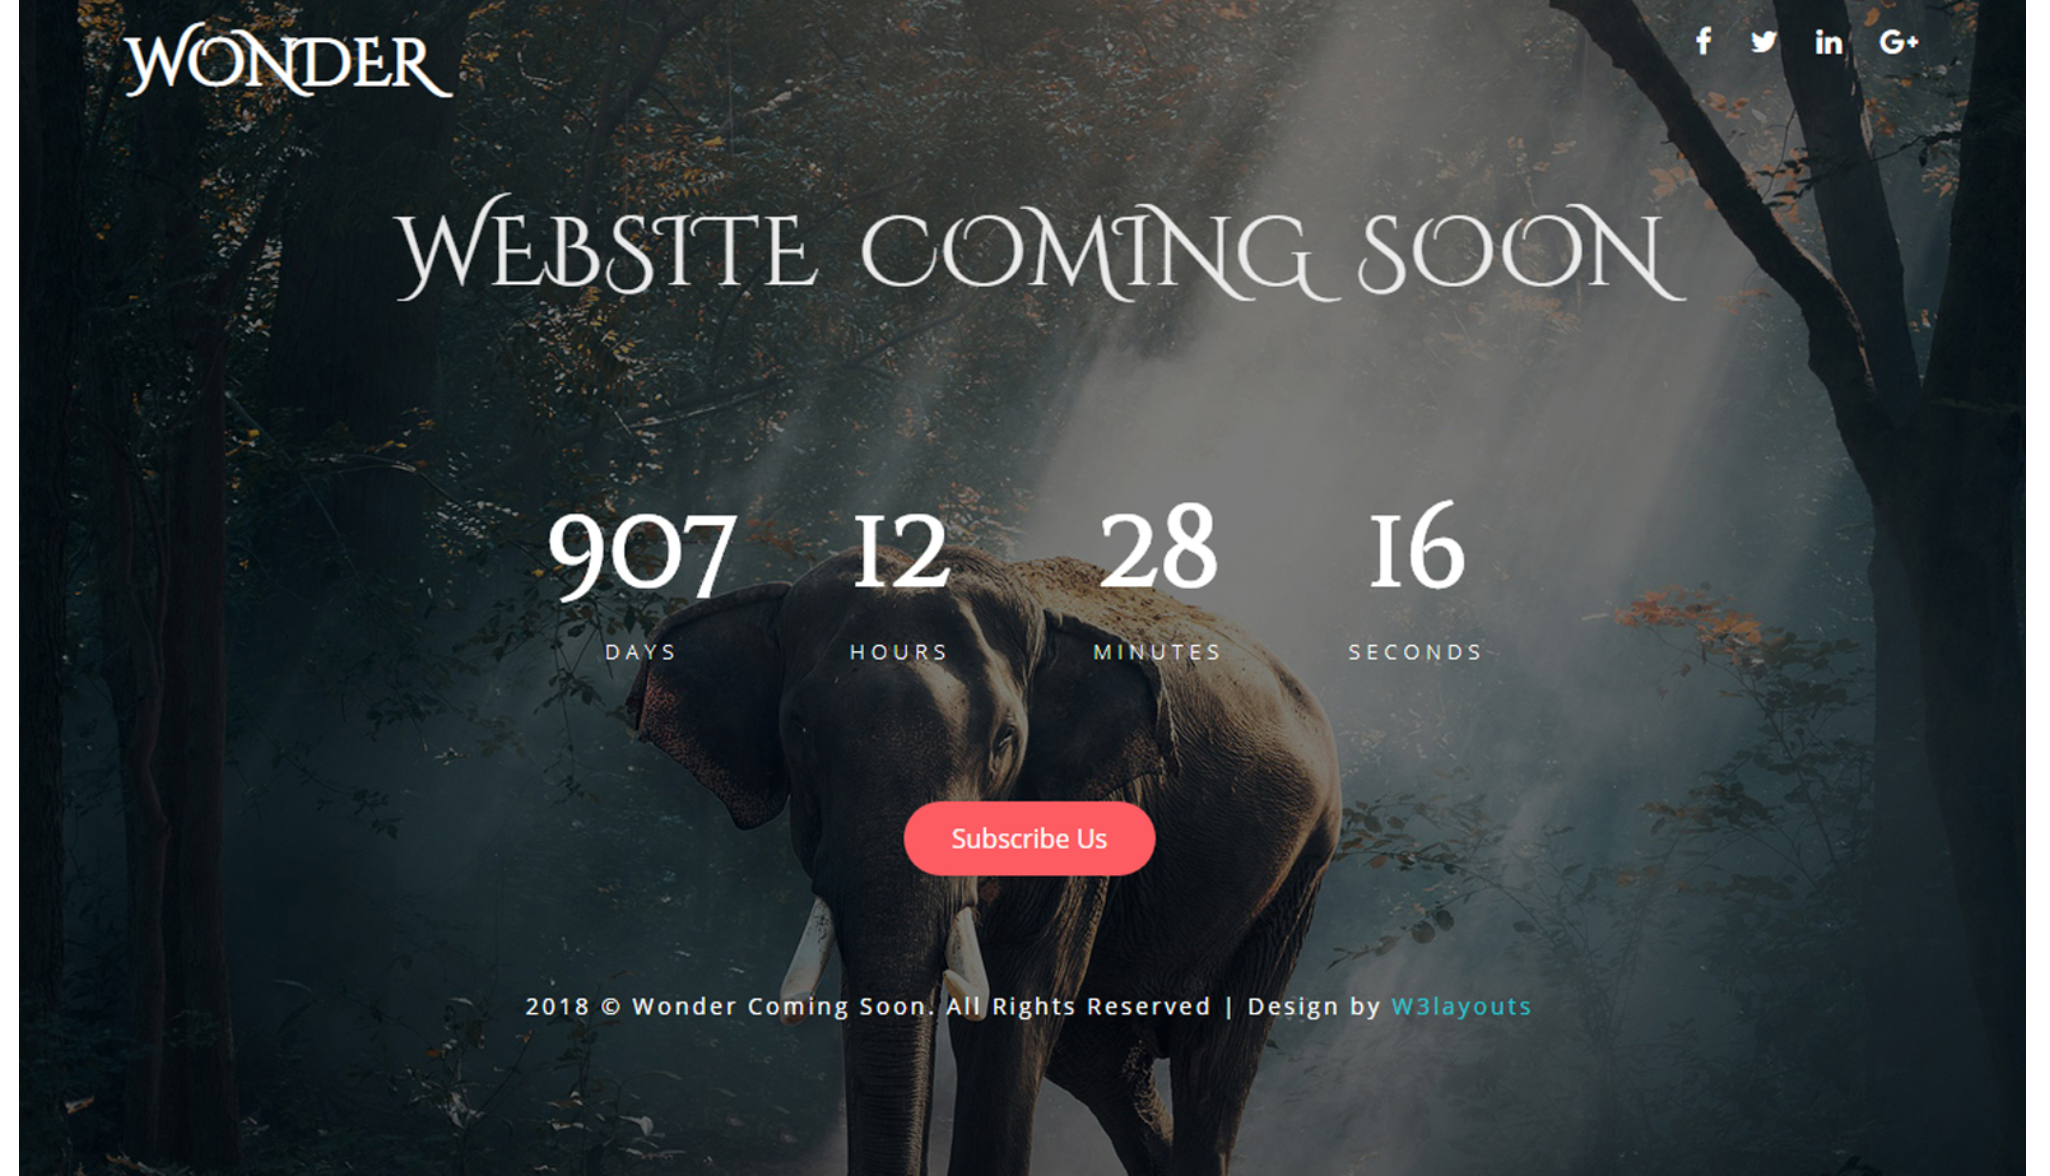 WonderComing Soon - Flat Responsive Widget Template